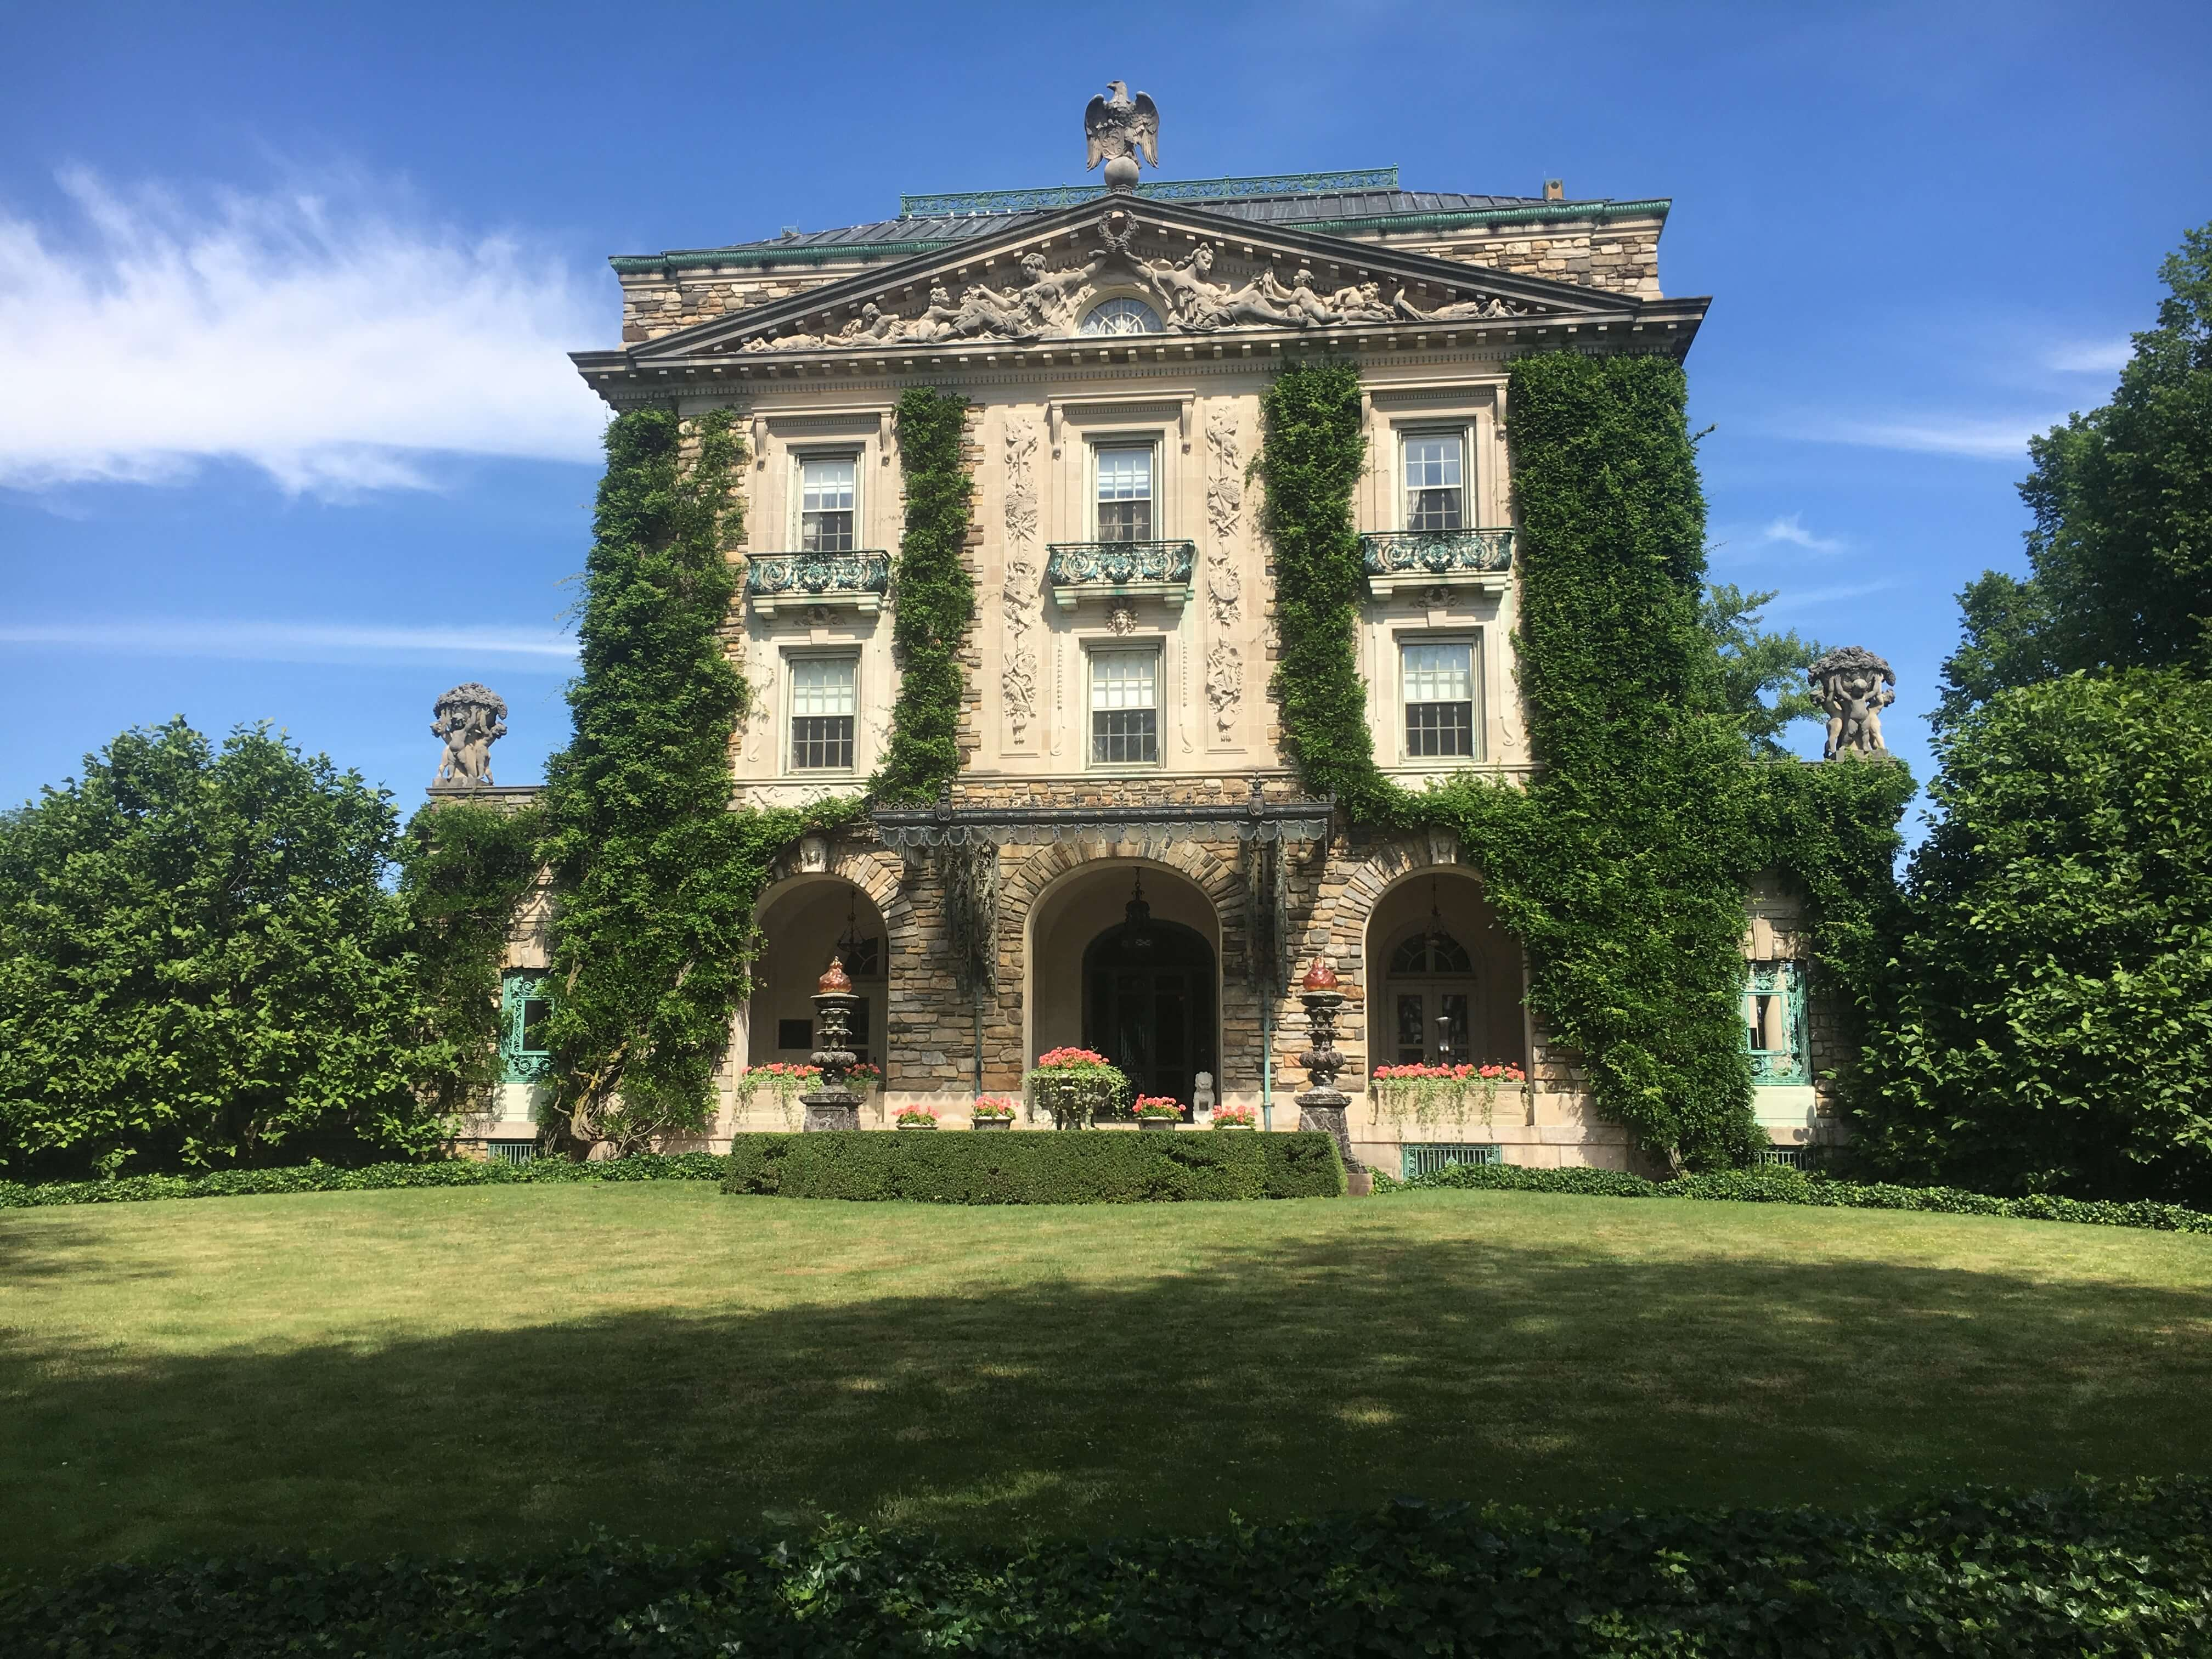 Kykuit The Rockefeller Estate in Sleepy Hollow